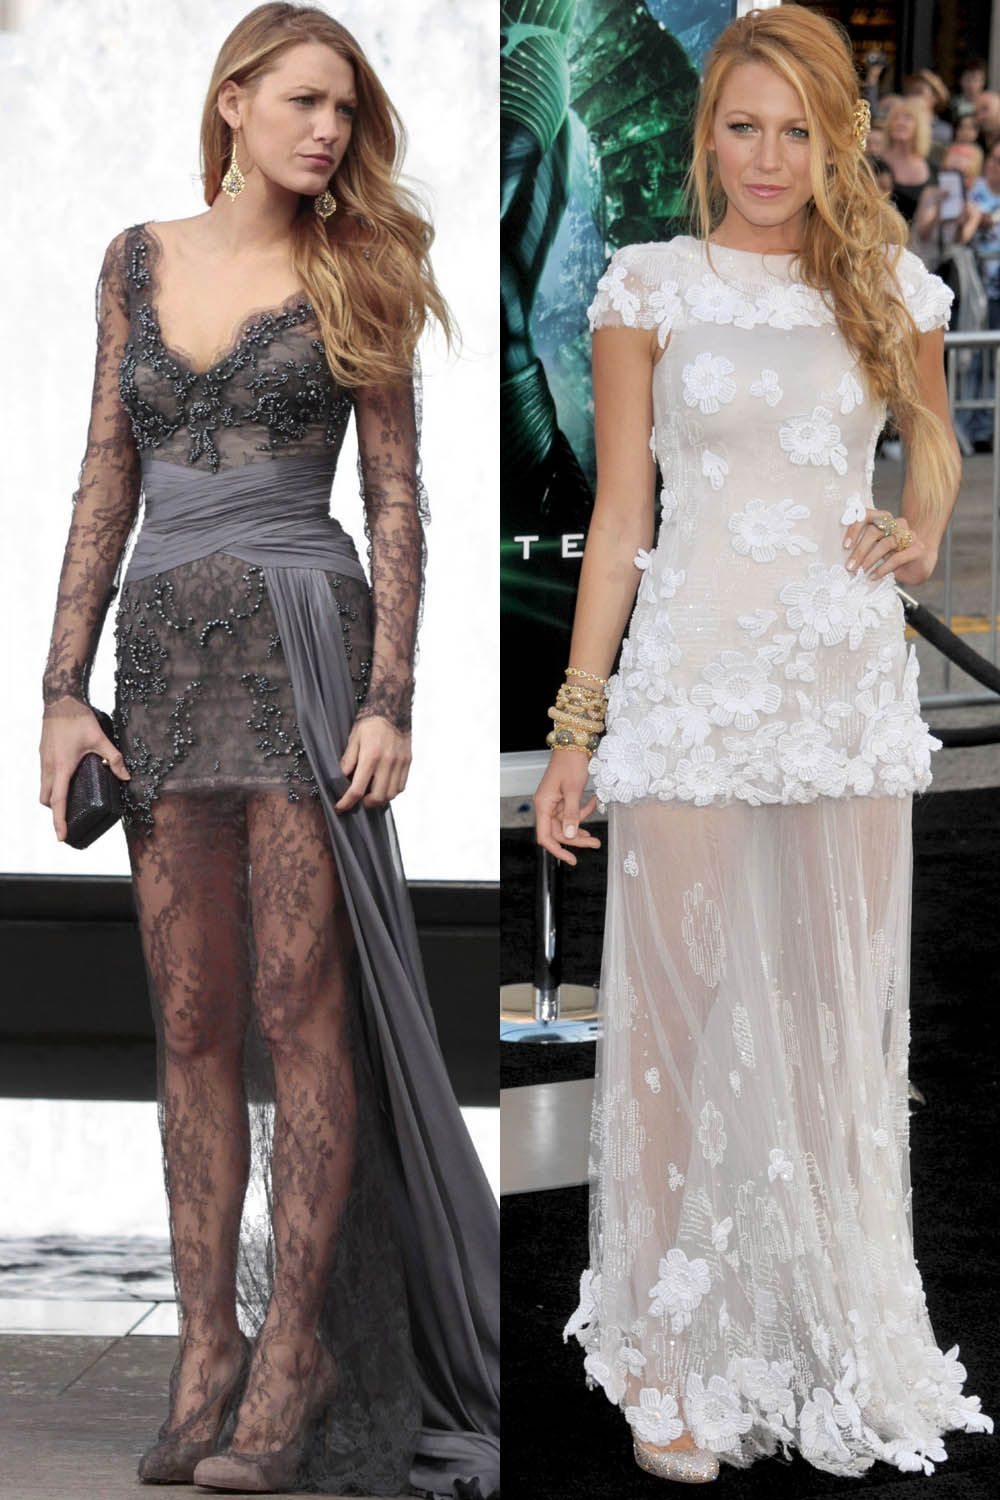 18 Geburtstag Party Outfit 28 Times Blake Lively Dressed Like Serena Van Der Woodsen In Real Life